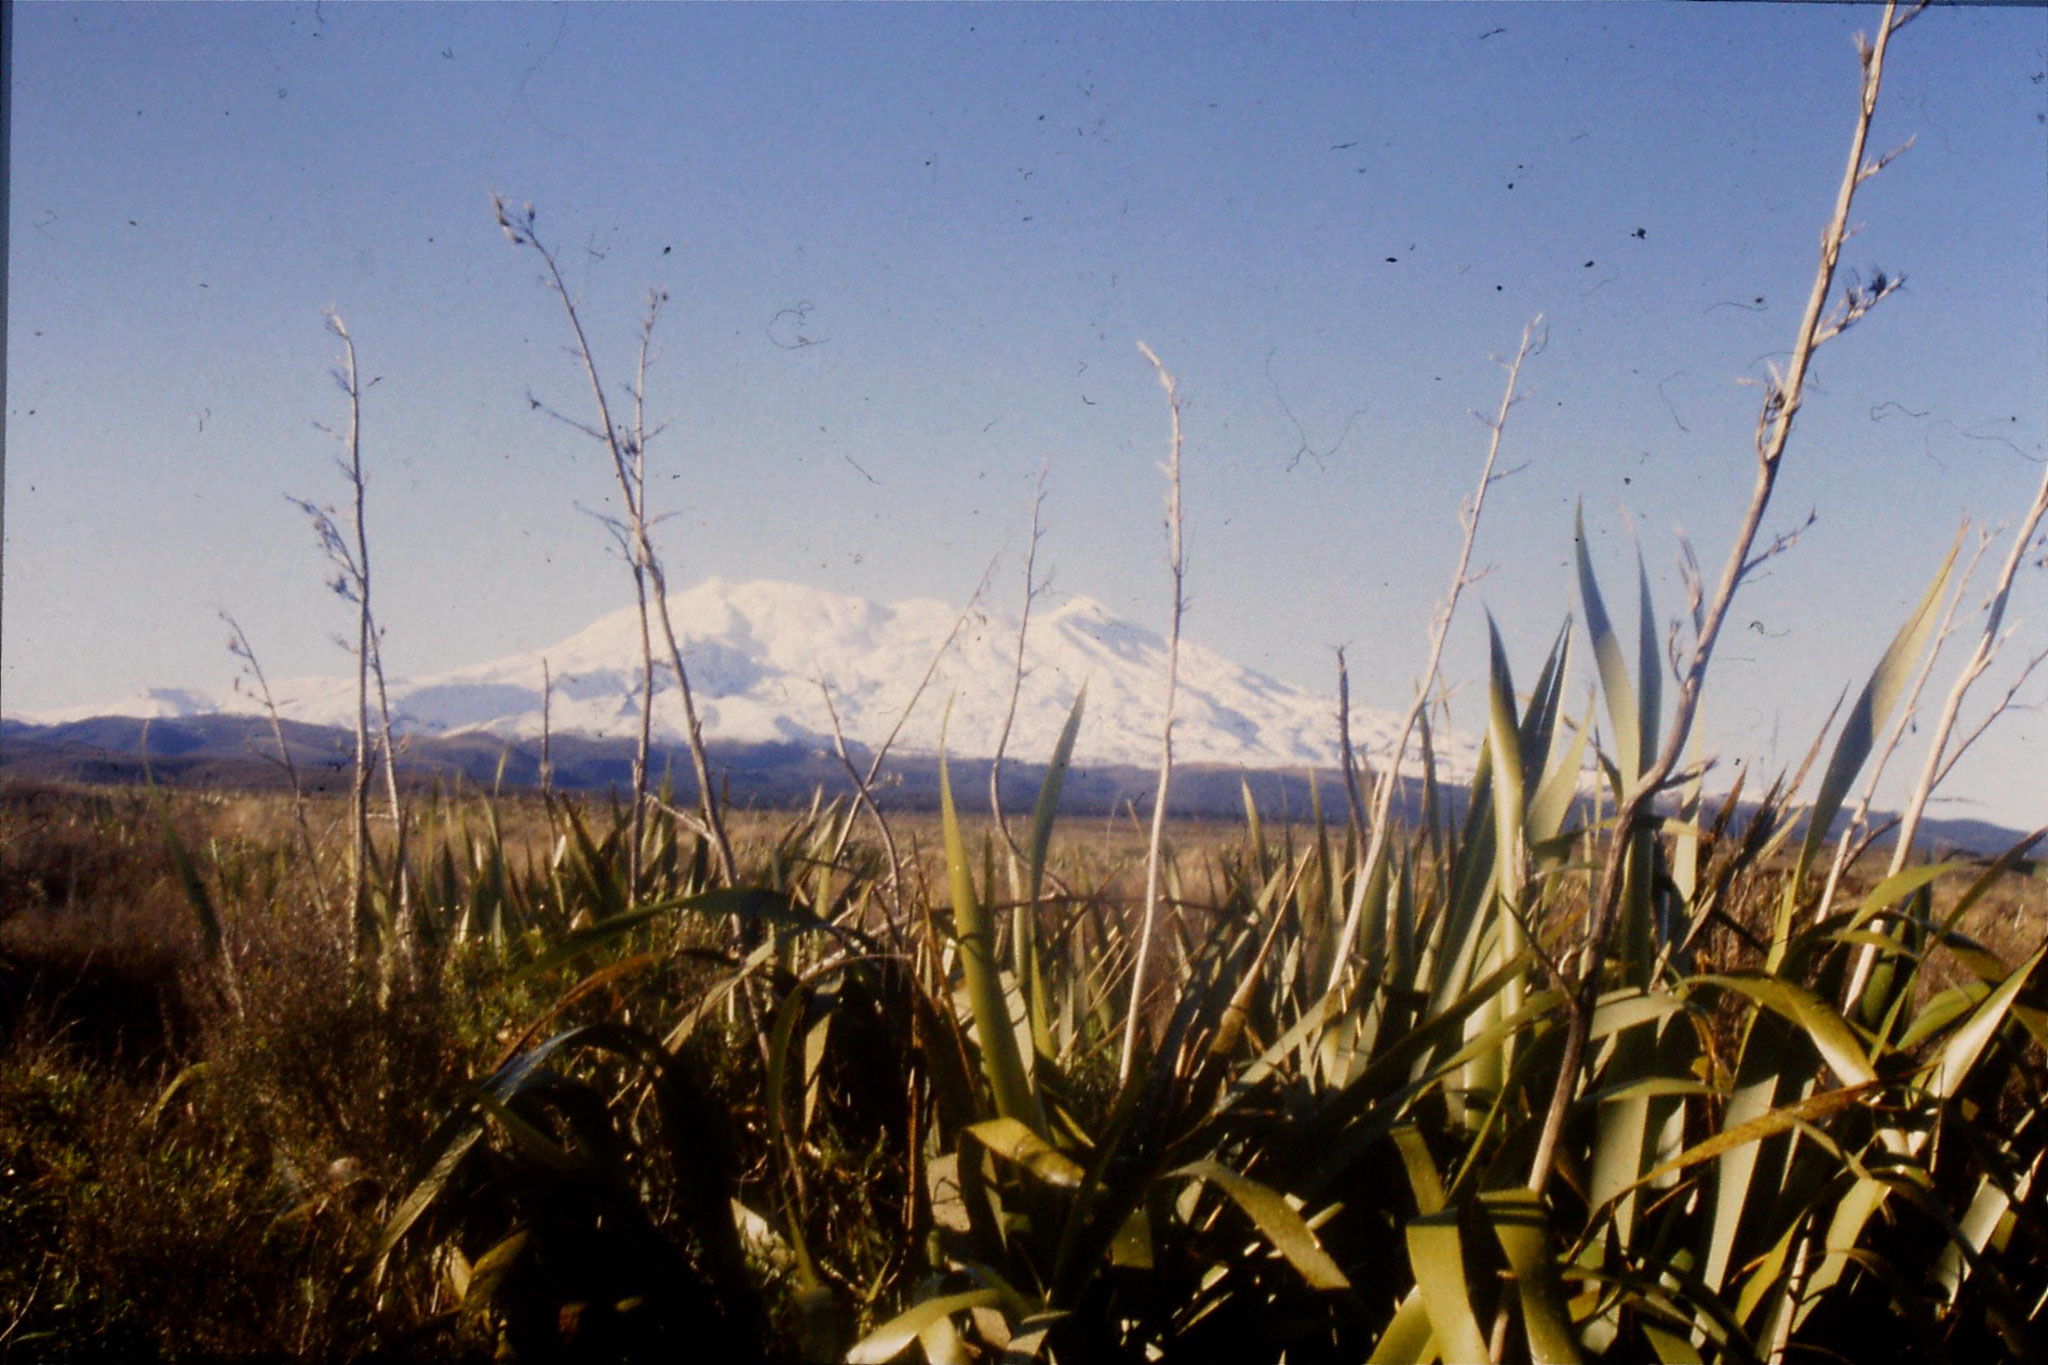 30/8/1990: 8: Mt Ruapehu from west